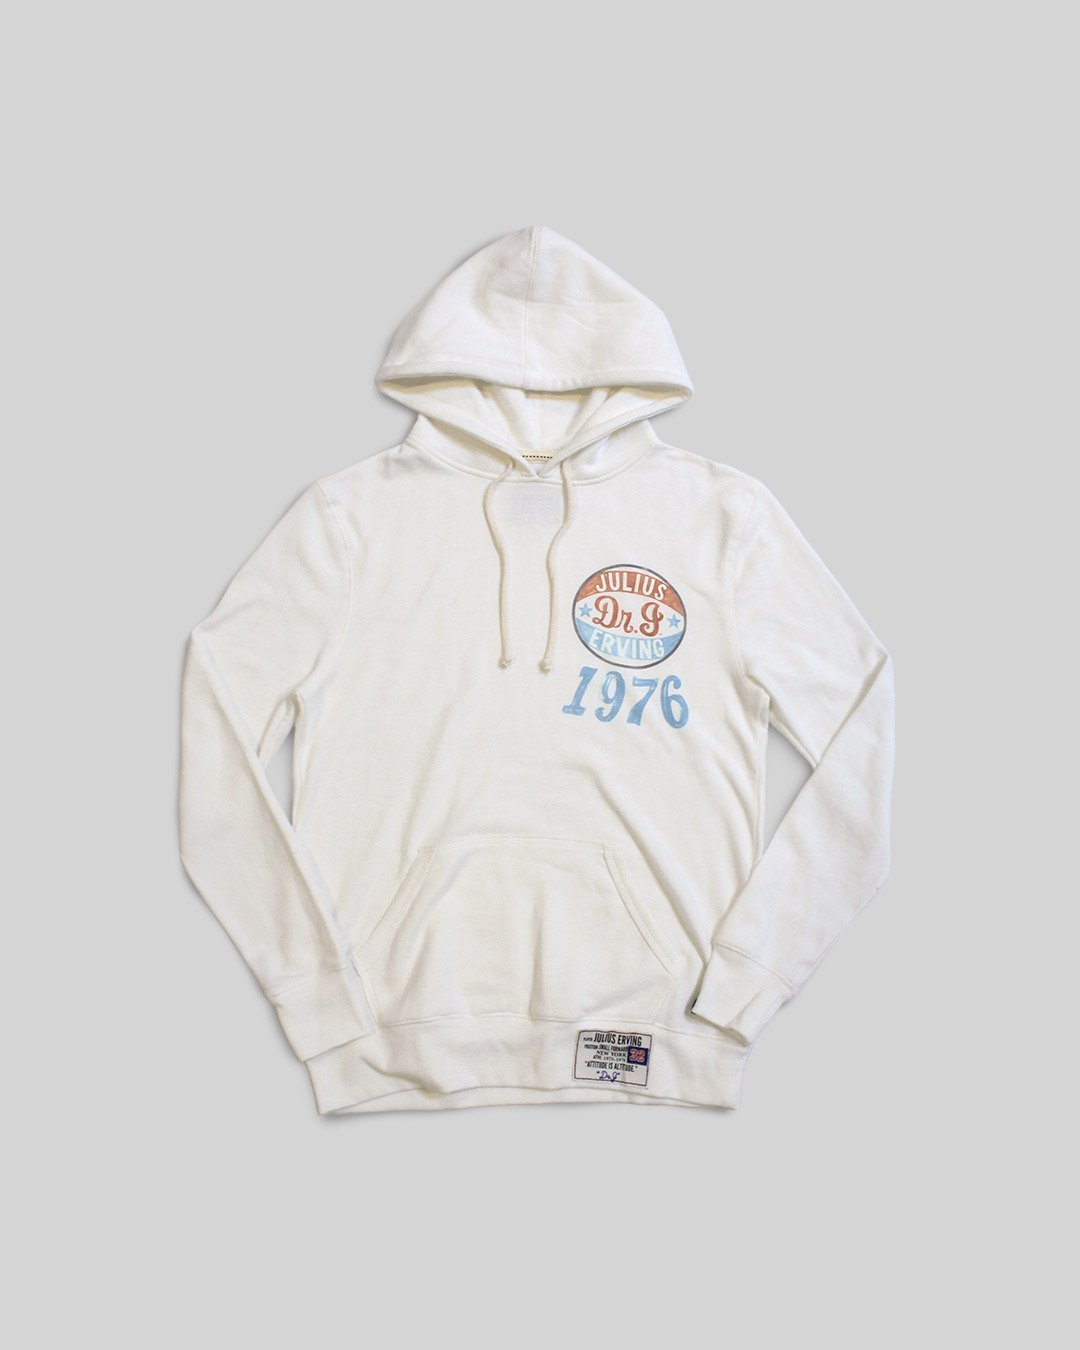 Dr. J 1976 Pullover Hoody - Roots of Inc dba Roots of Fight